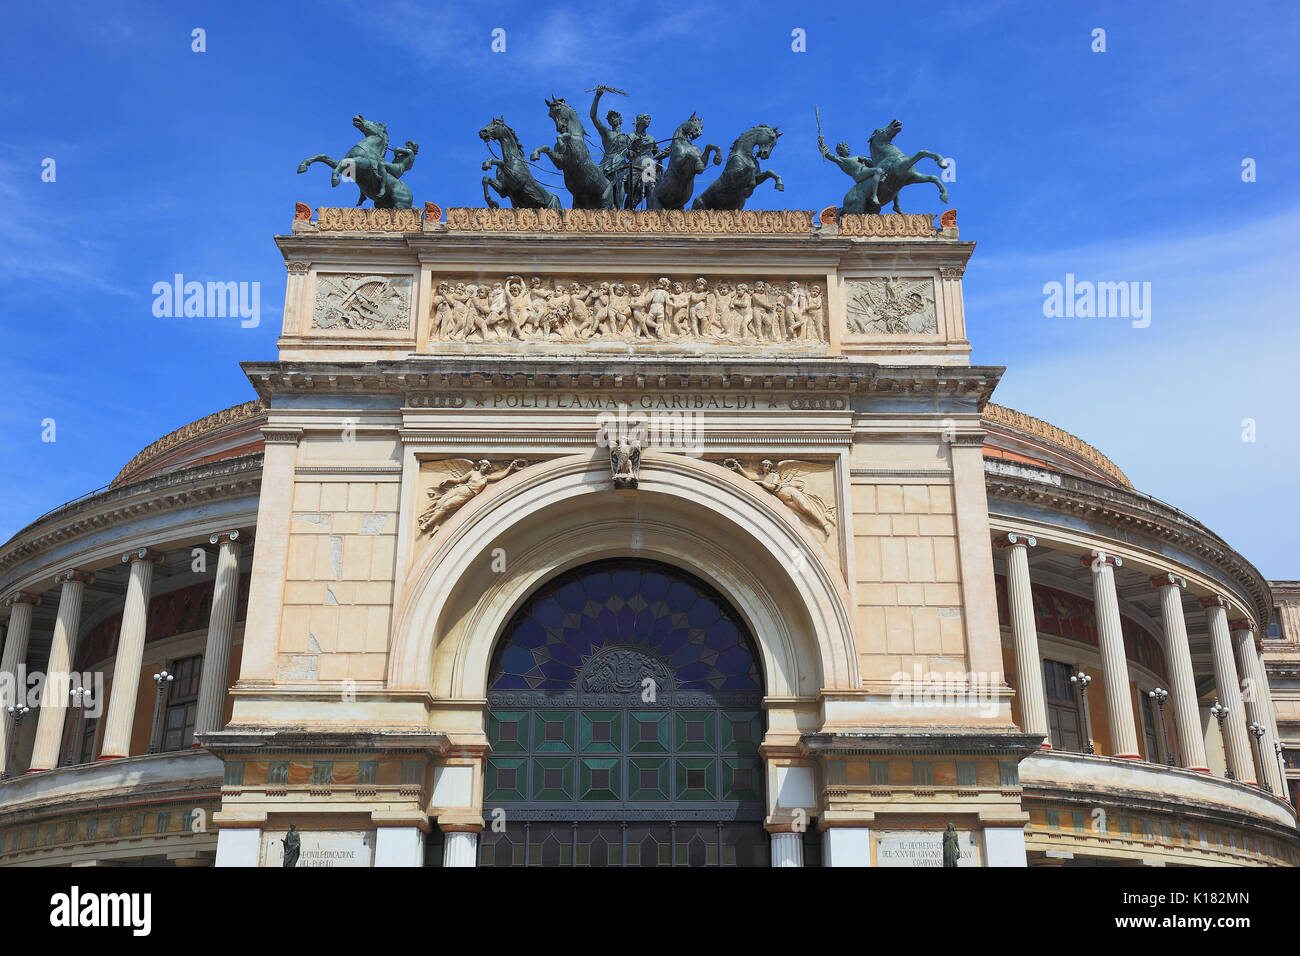 Sicily, in the old town of Palermo, the Teatro Politeama Garibaldi is a theater building in the style of neoclassicism Stock Photo